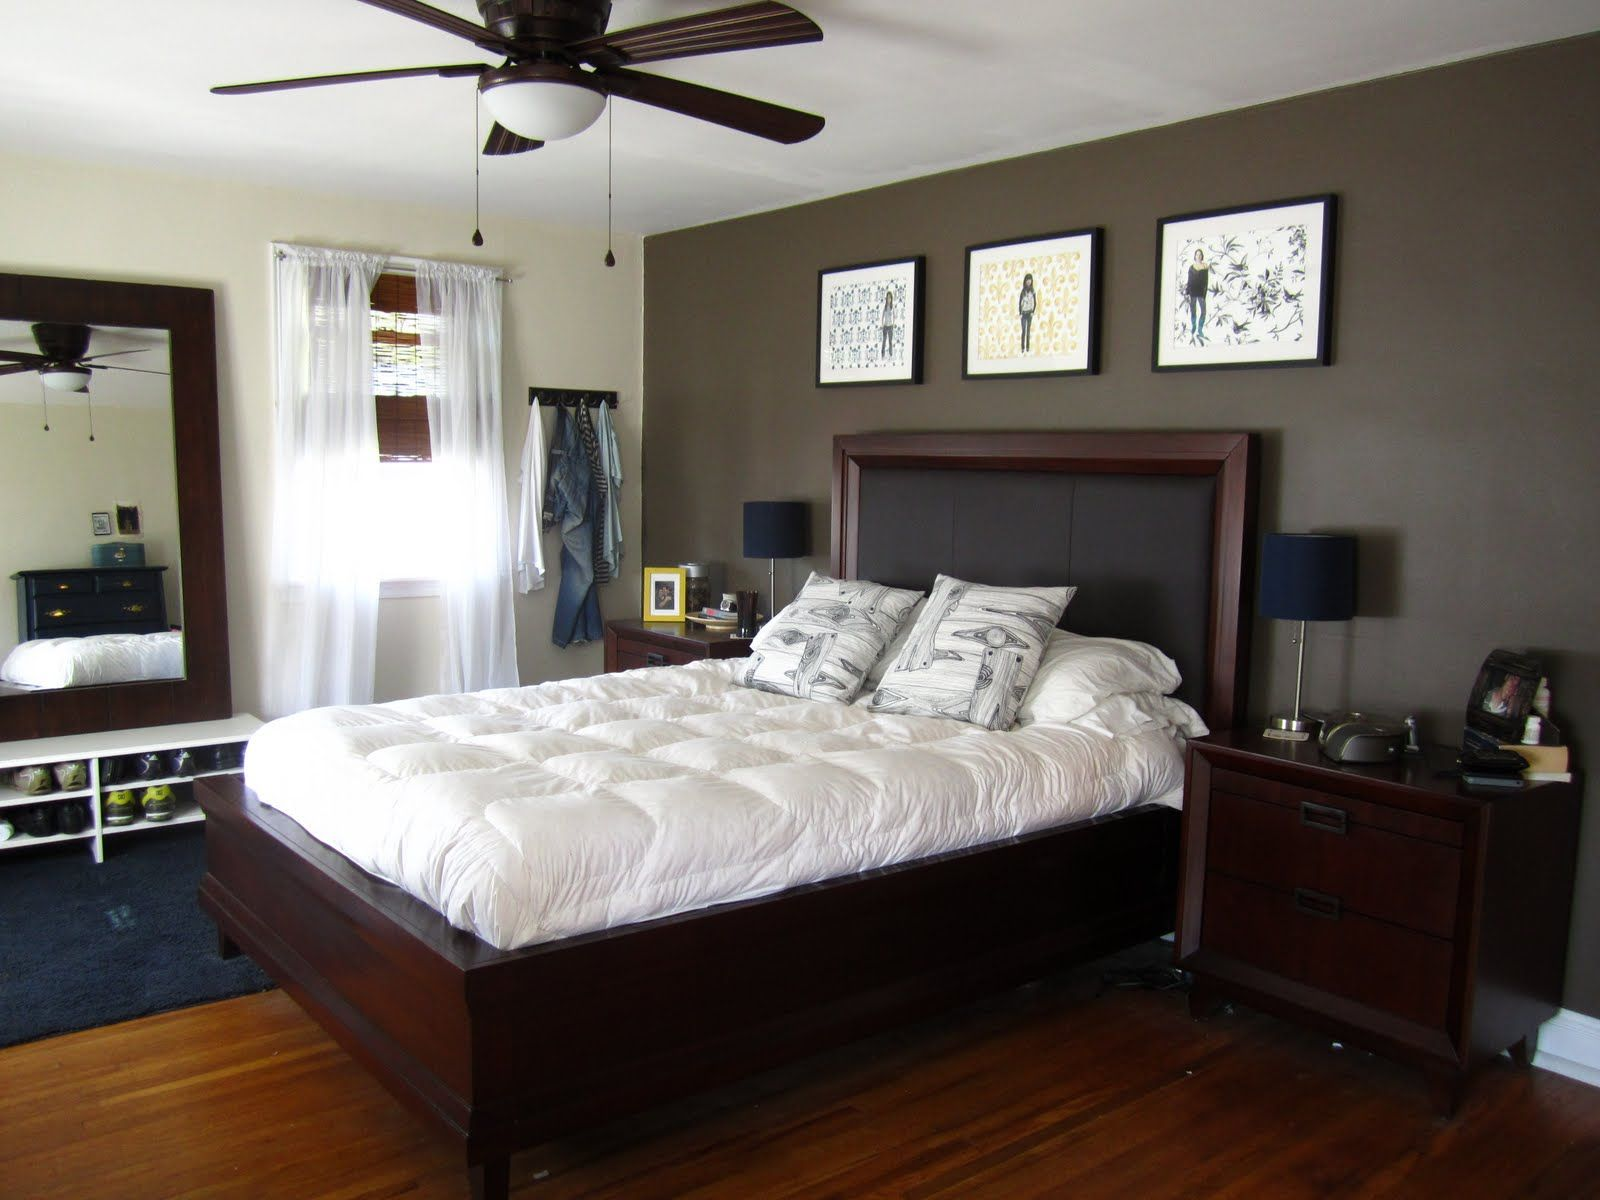 Bedroom paint ideas accent wall paper - Bedroom Fancy White Tufted Bed With Dark Espresso Queen Size Platform Bed And Brown Paint Wall Also Terrific Ceiling Lamp Fan Attractive Bedroom Accent